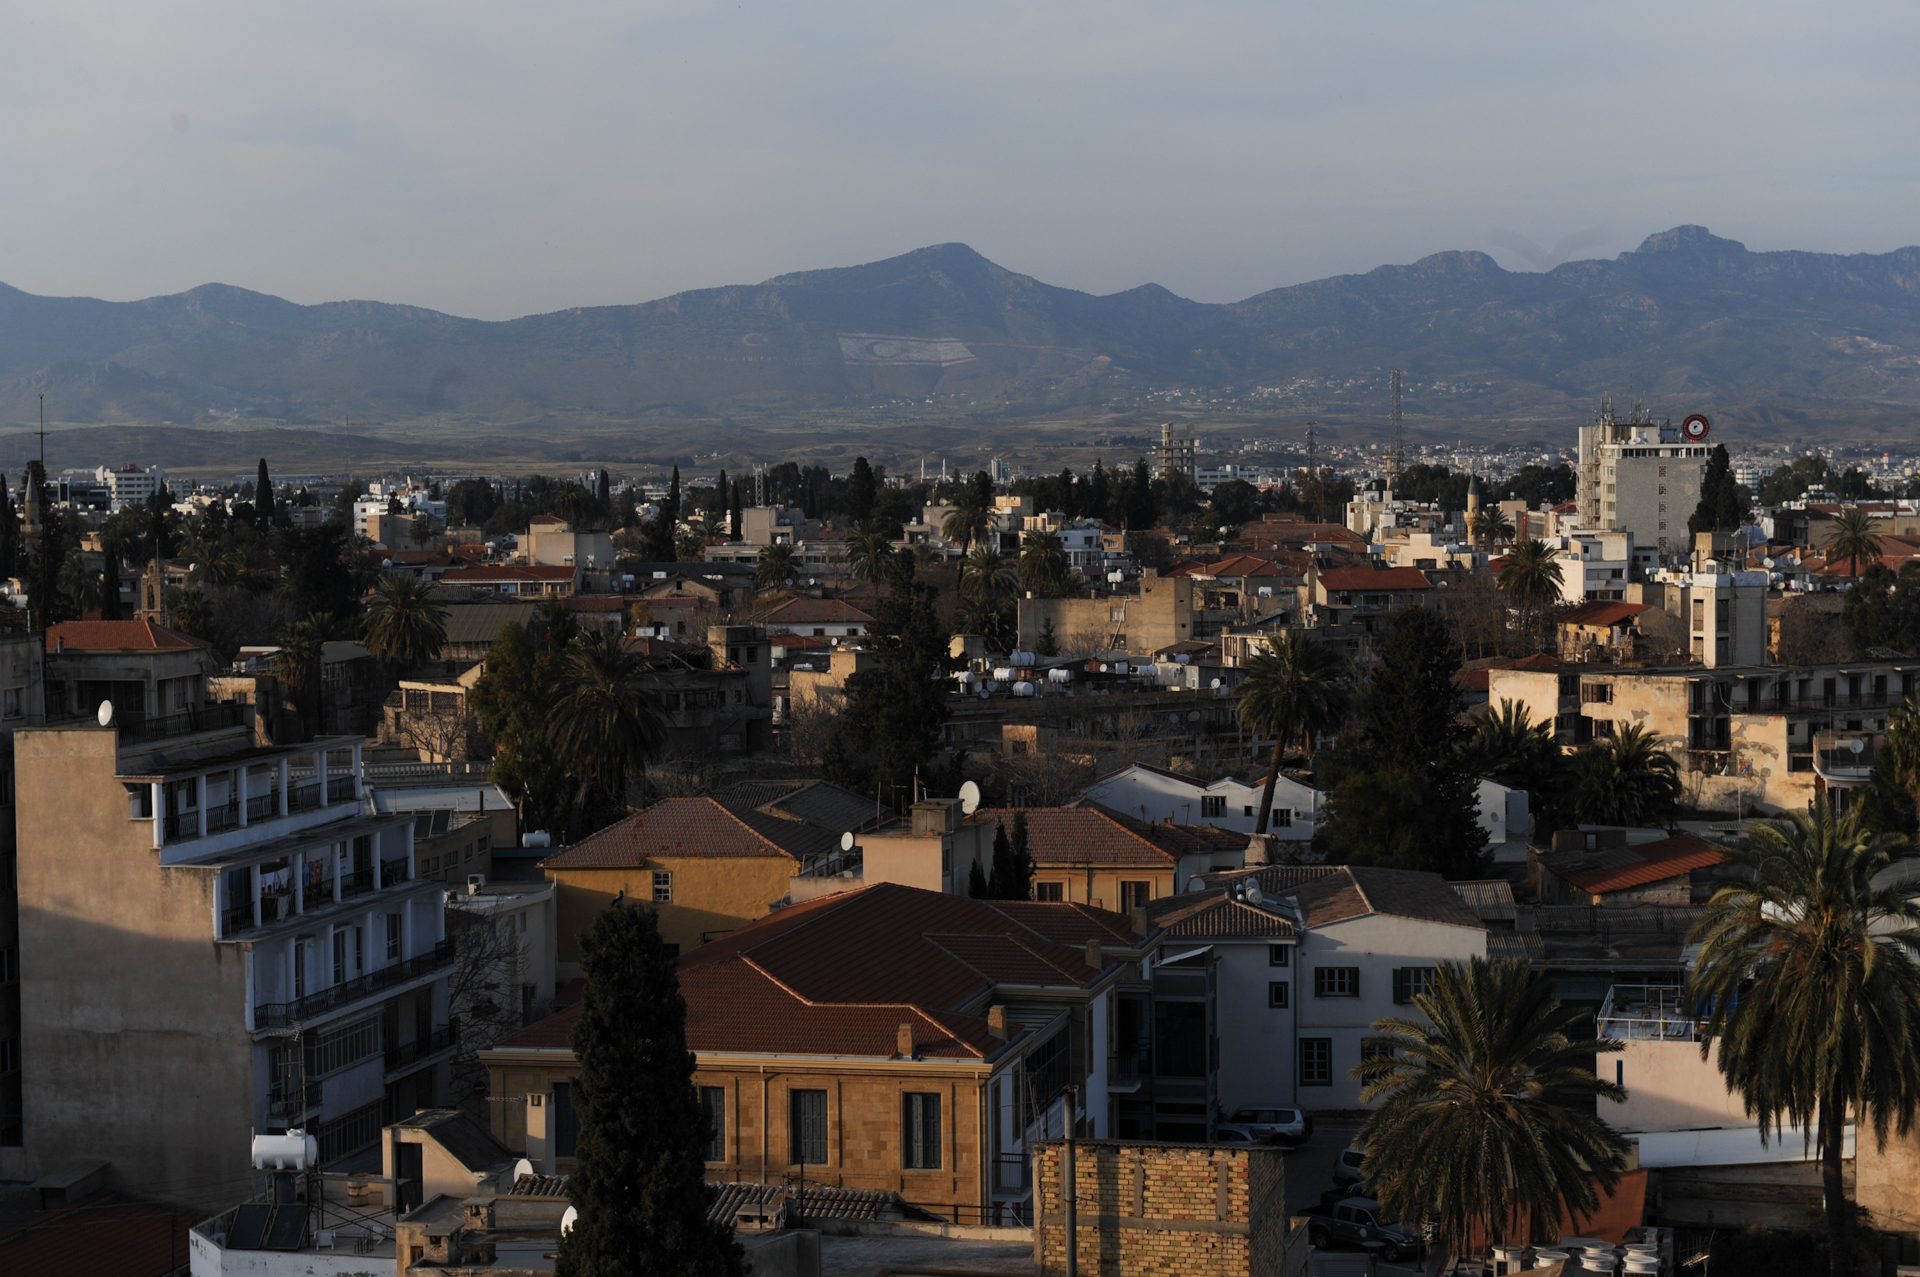 NICOSIA, CYPRUS.  A view of Nicosia and the Turkish-occupied northern half of the city and Cyprus is seen from the roof of the Holiday Inn on March 25, 2013.  The mountain on the Turkish side has the flag of the Turkish Republic of Northern Cyprus emblazoned on its side with stones, which lights up at night and is visible from across the border in the Greek-speaking southern half of Cyprus.